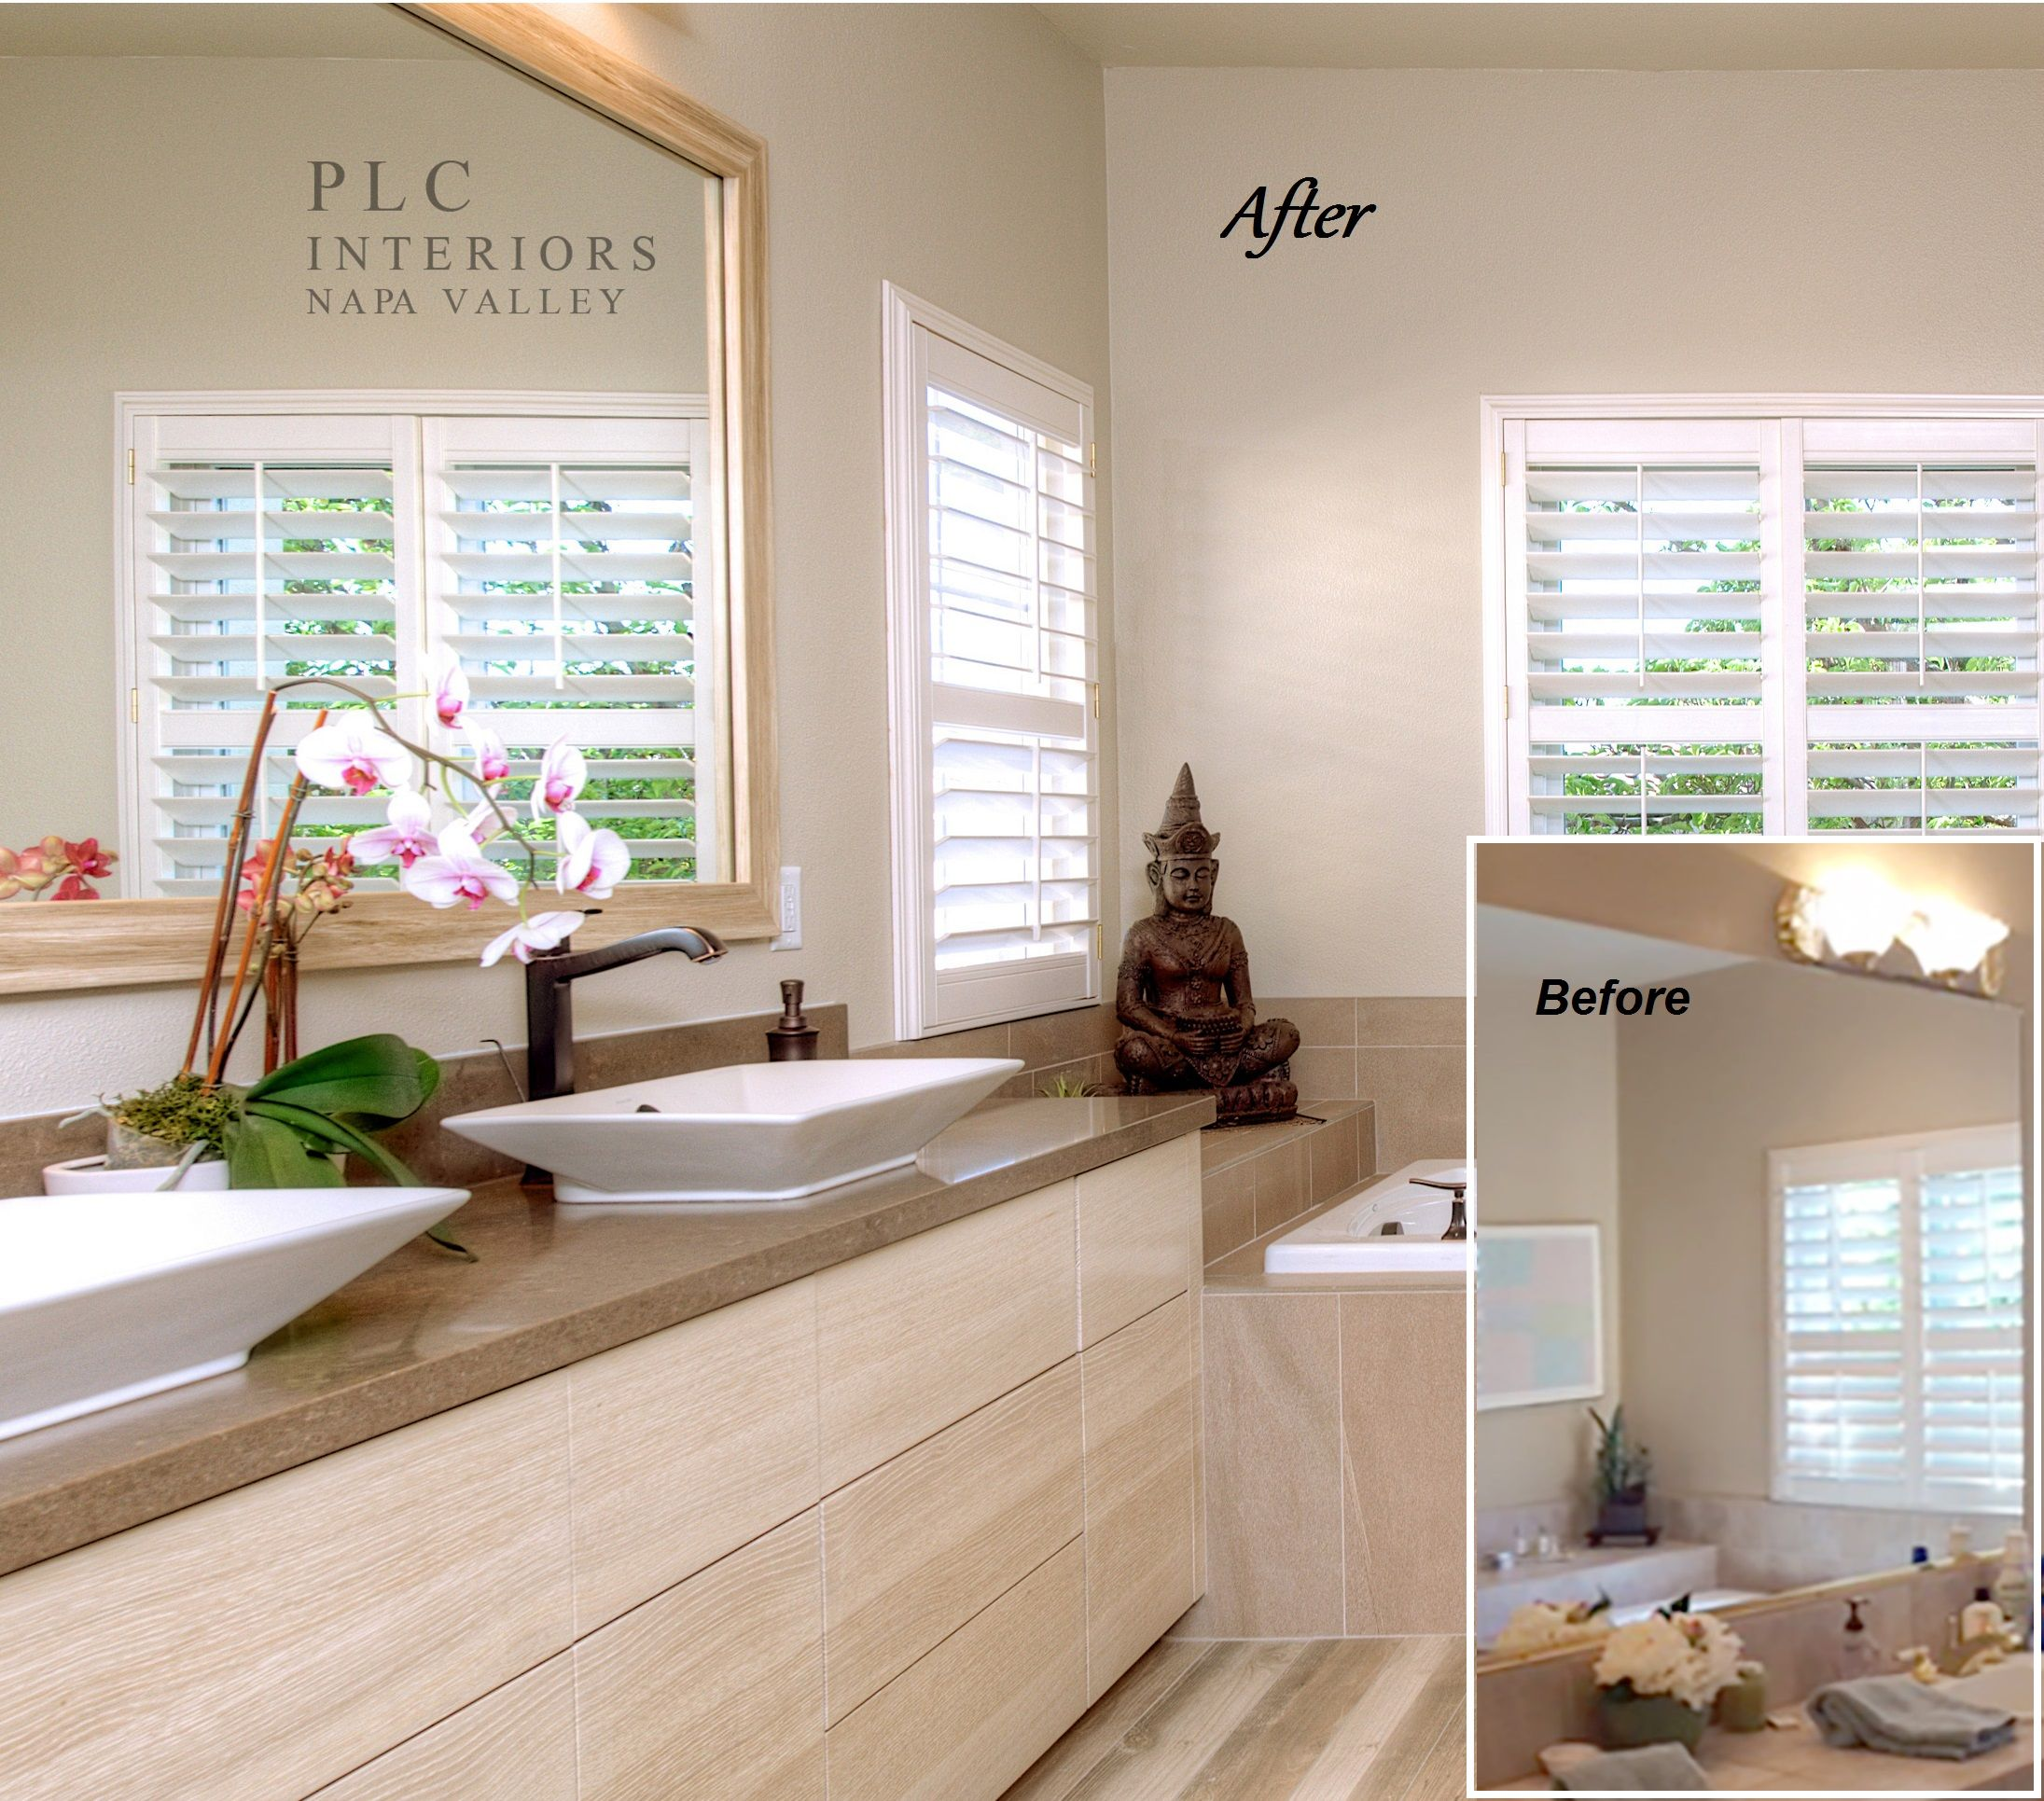 PLC Interiors Of Napa, CA Added A MirrorMate Frame Directly To The Plate Glass Mirror. The